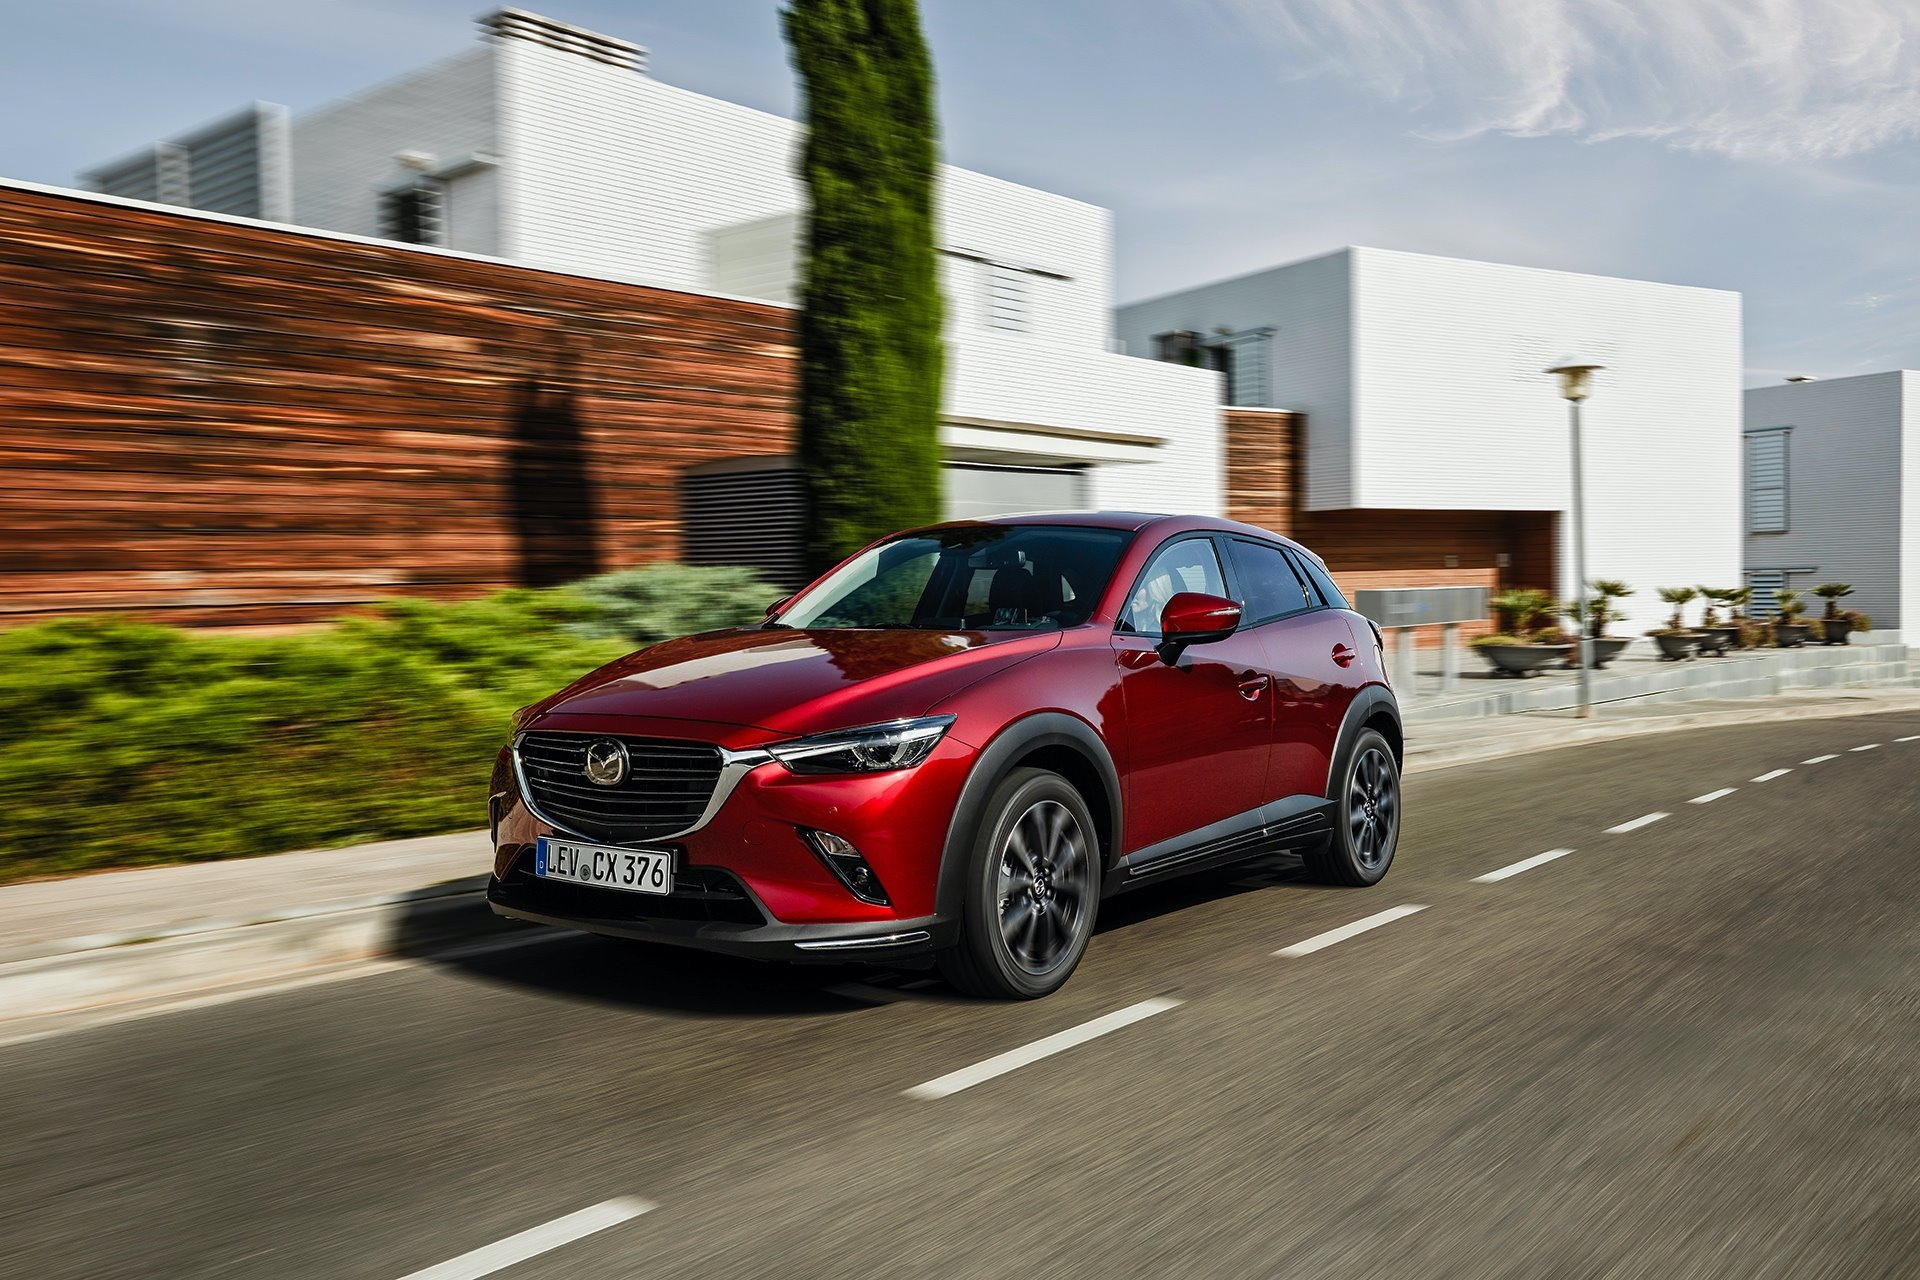 New 2019 Mazda-CX-5 Sport CX-5 Sport for sale $25,750 at M and V Leasing in Brooklyn NY 11223 1